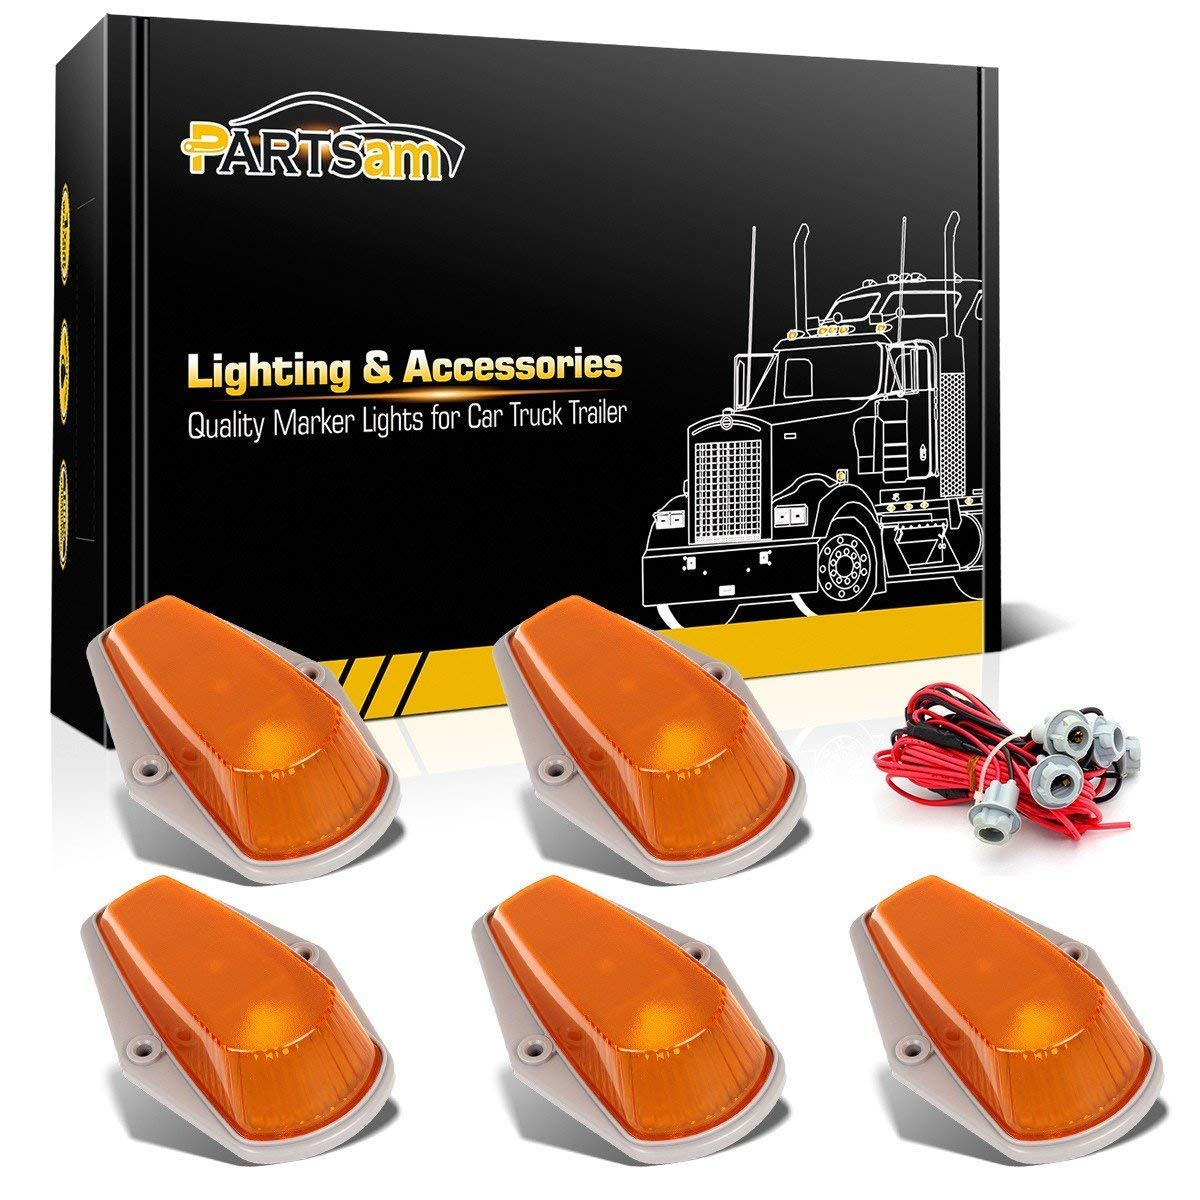 Partsam 5X Cab Roof Top Clearance Marker Light Amber Cover w basing House+T10 Socket Wiring Harness Replacement for 1973-1997 Ford F150 F250 F350 F Pickup Trucks